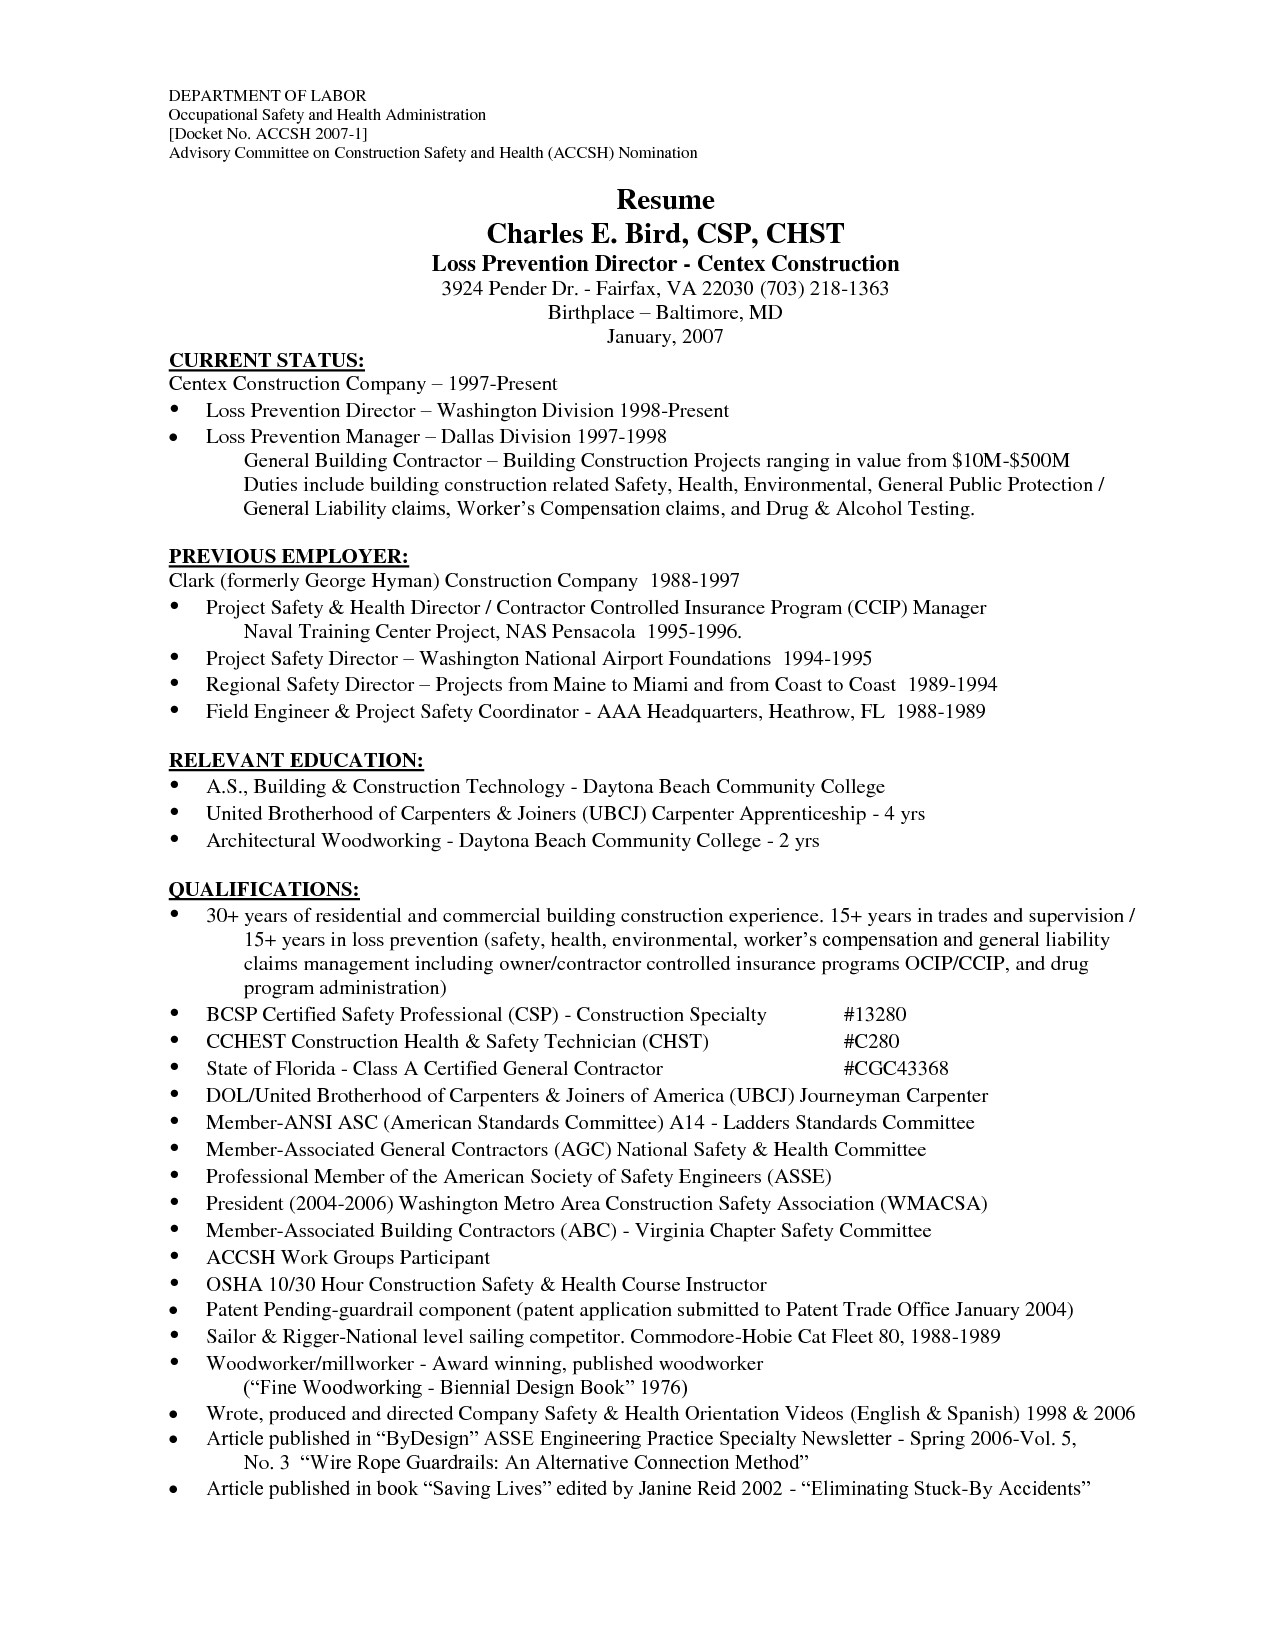 Resumes for Construction Workers - Resume Templates for Construction Workers New General Construction